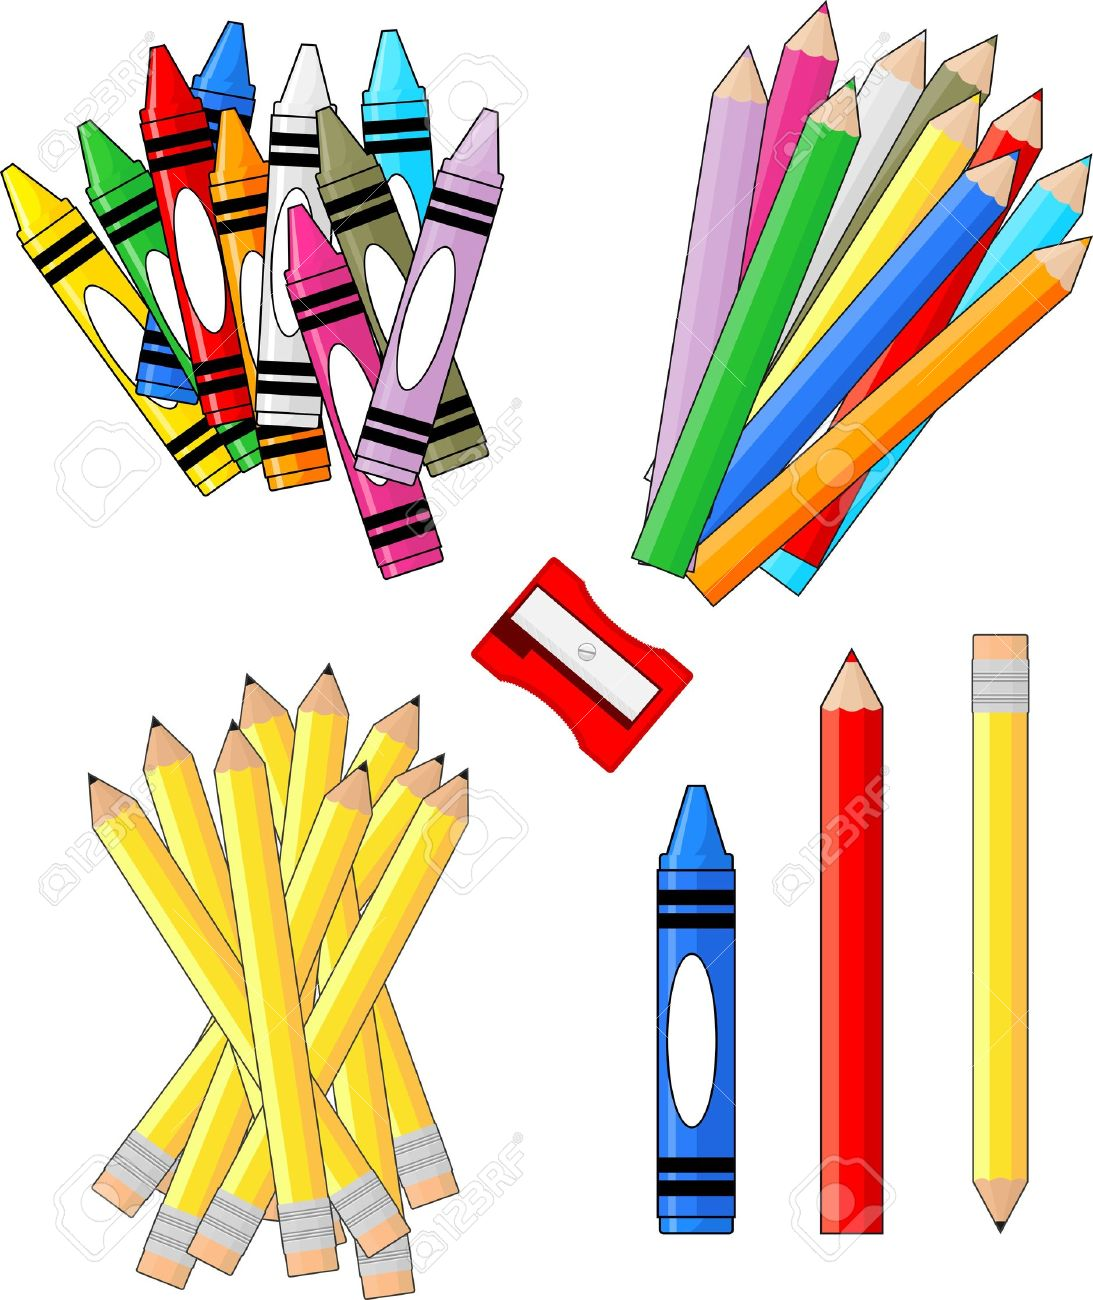 school supplies groups clip art isolated on white background,...